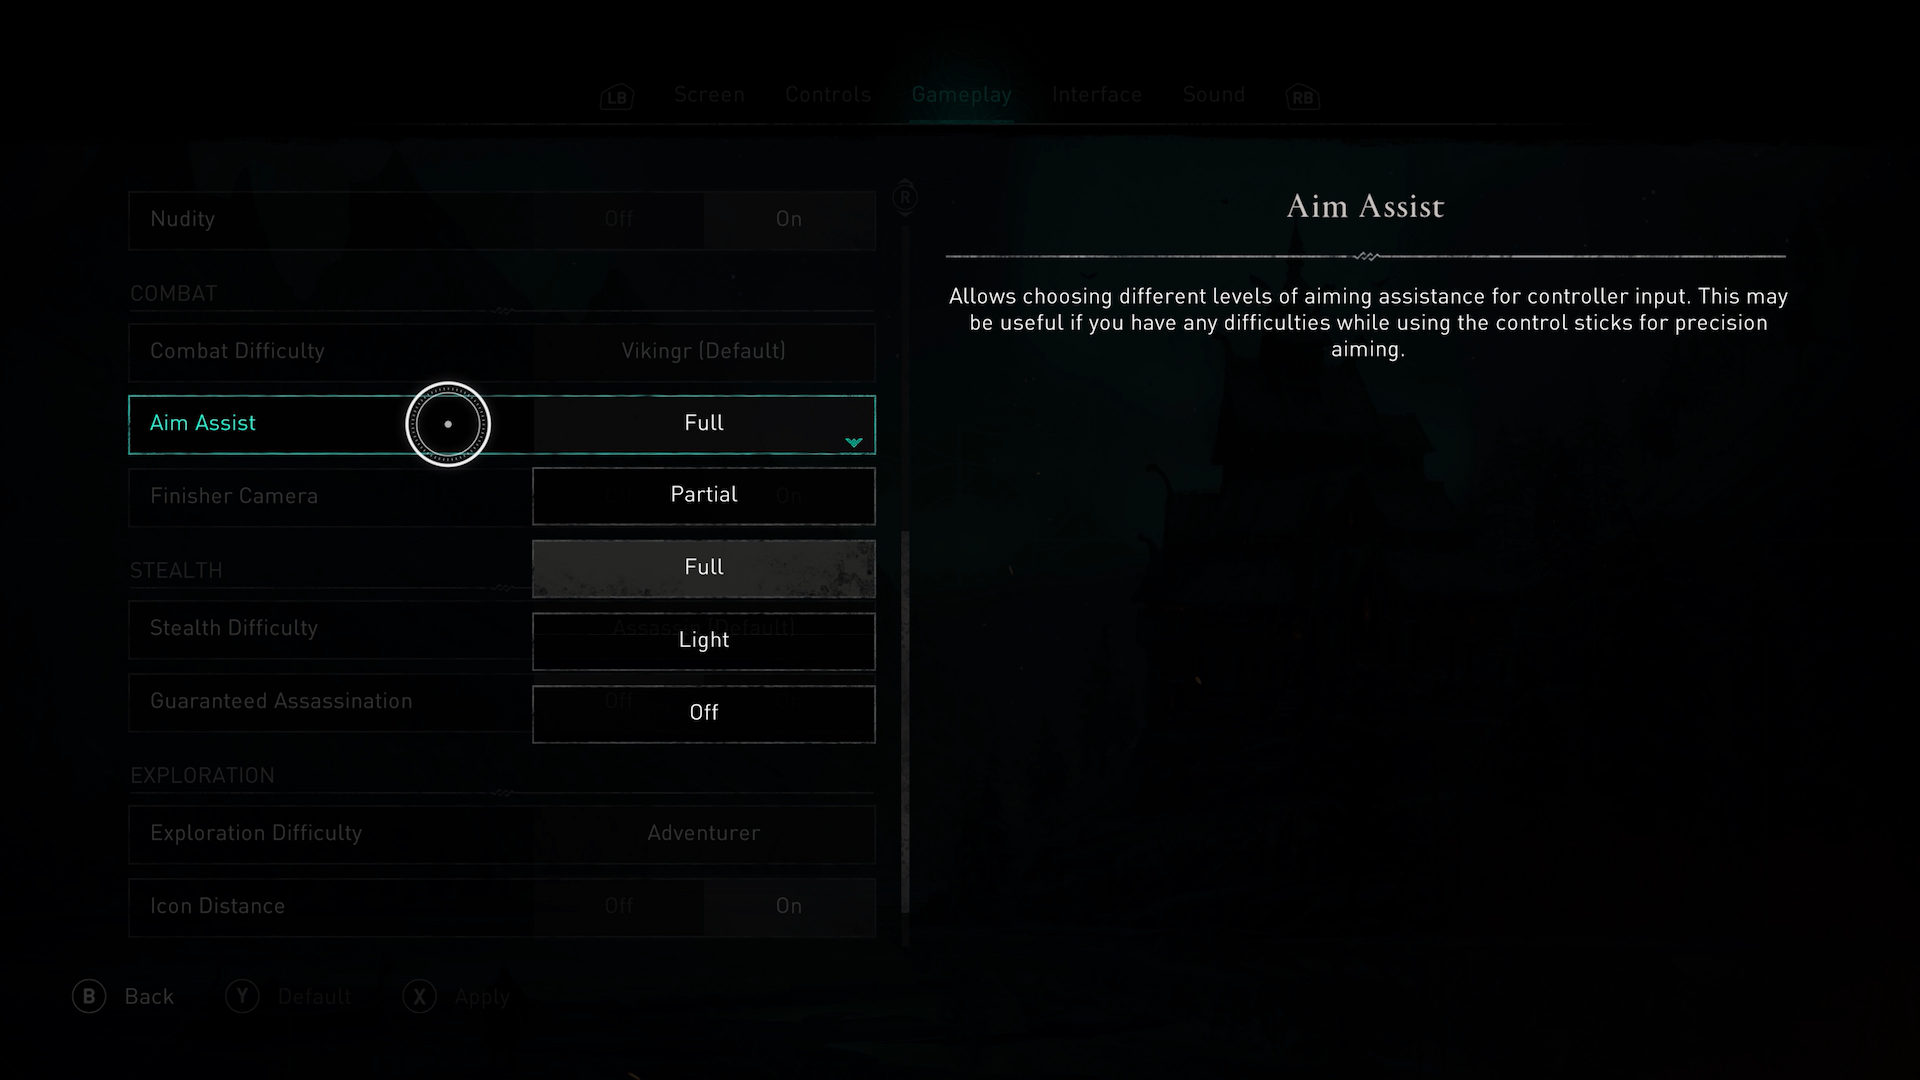 A screenshot showing the Aim Assist options in Assassins Creed Valhalla.